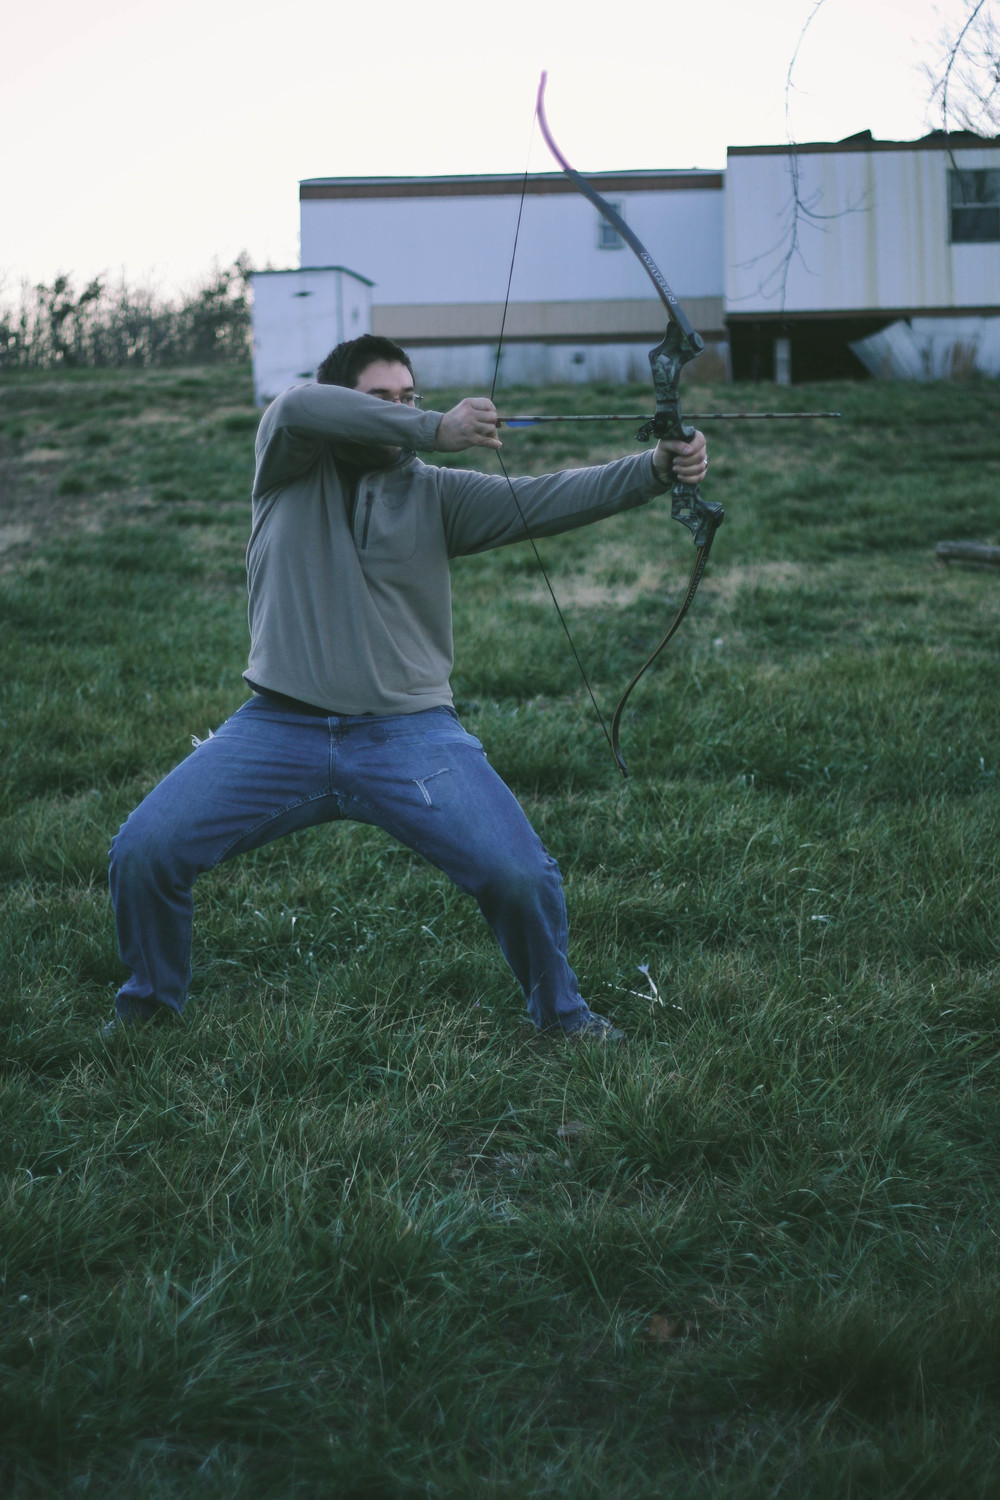 Kung-Fu bow and arrow ;)